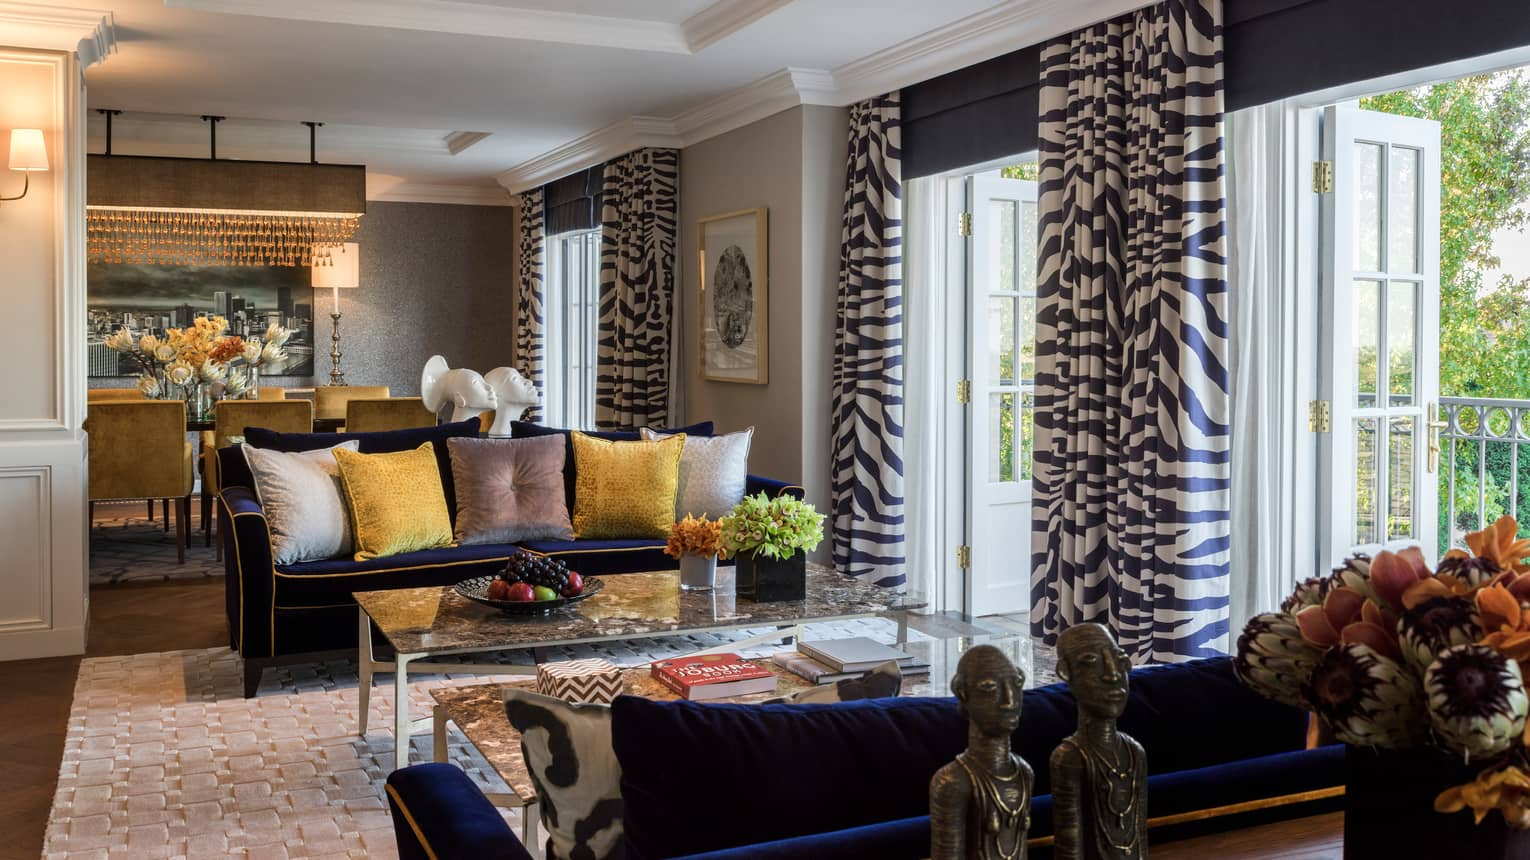 Royal Suite sitting area, two blue sofas with yellow, grey pillows, open patio doors with Zebra print curtains